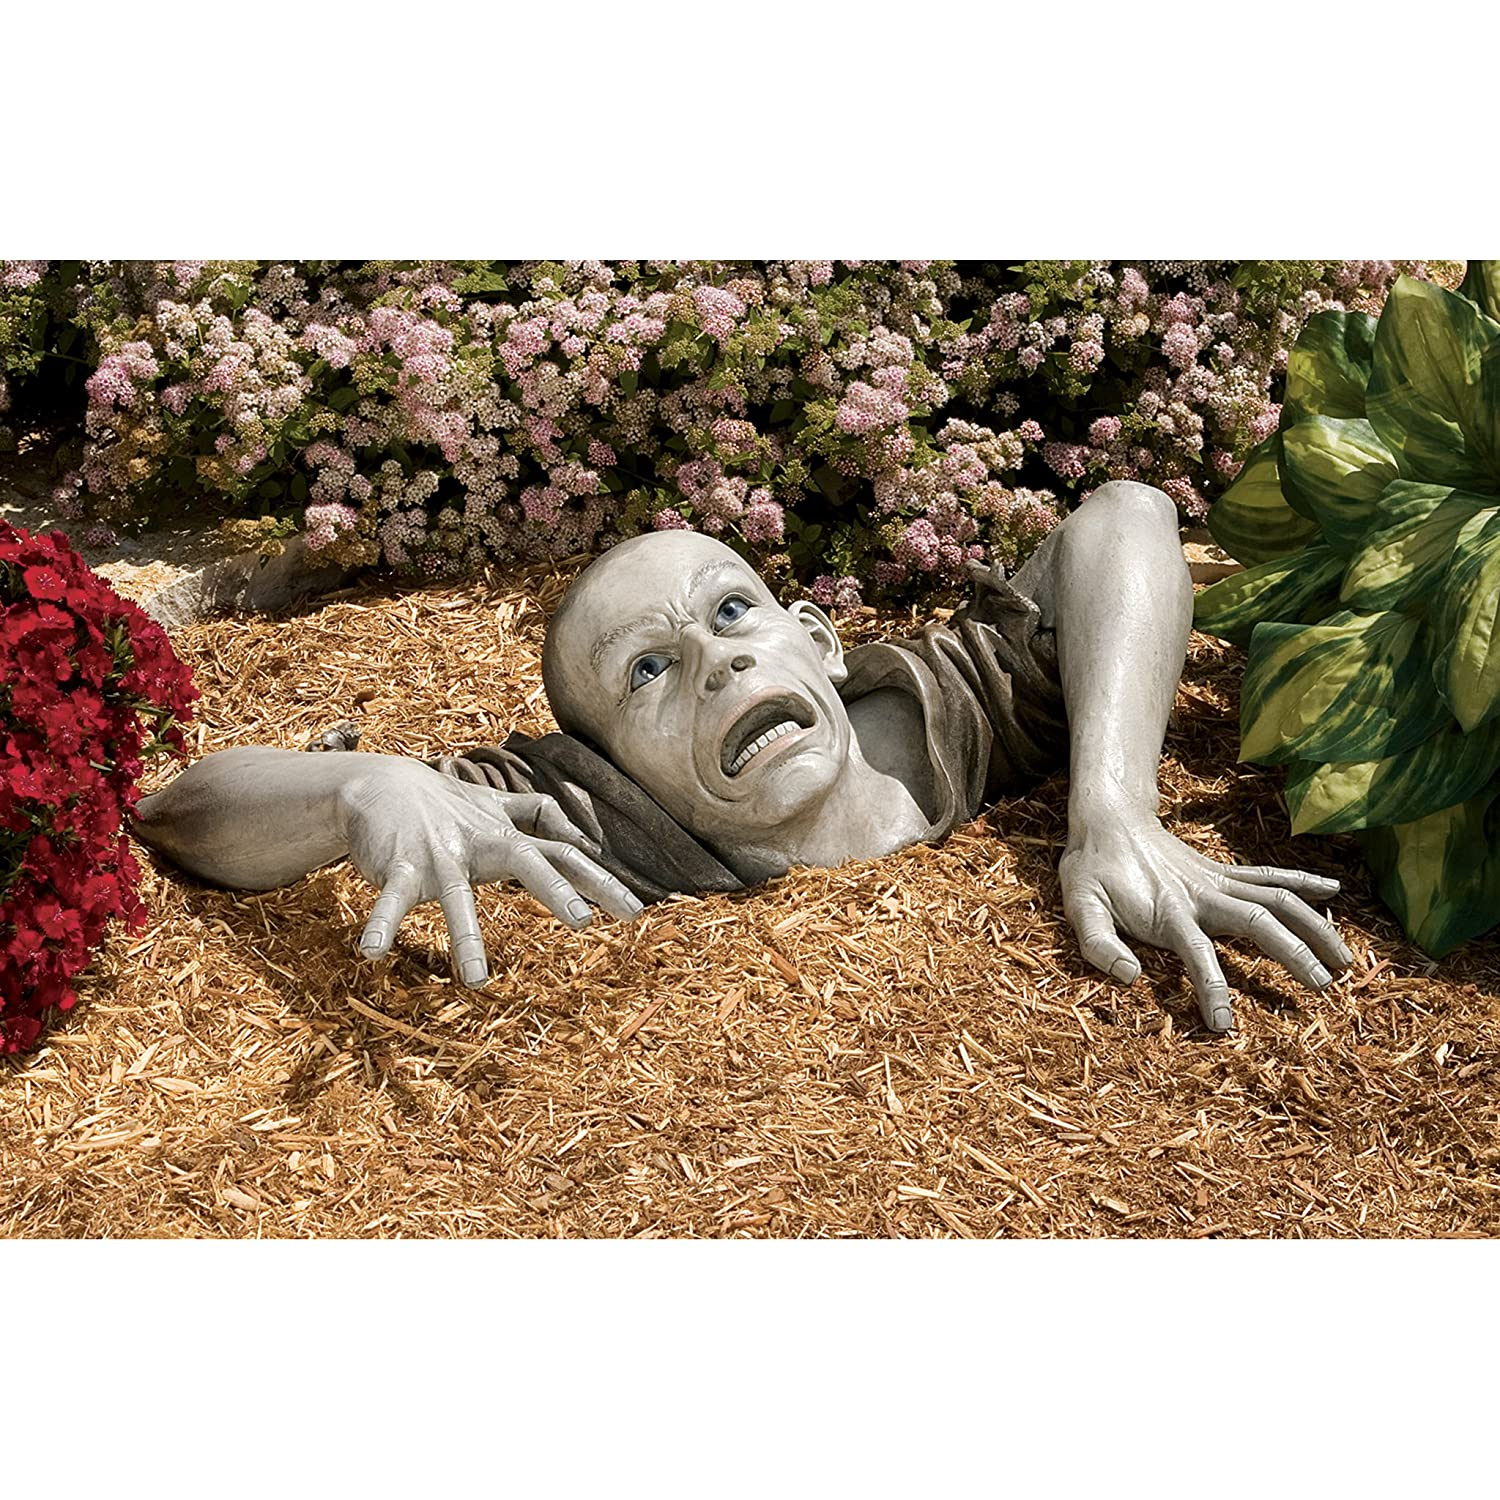 Zombie Yard Decorations for Halloween